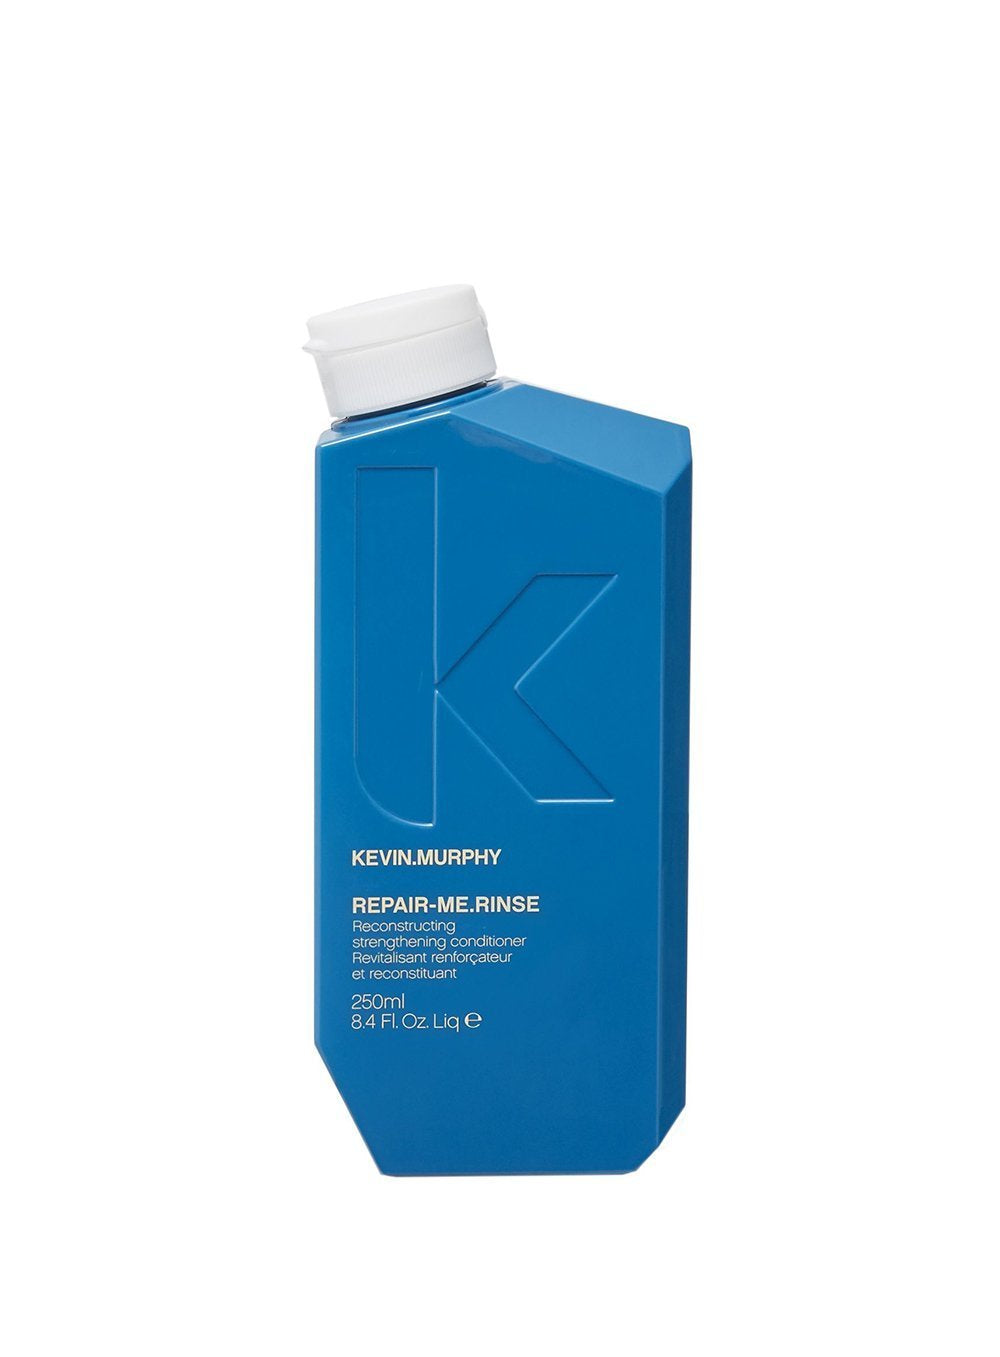 Kevin Murphy Repair Me Rinse Reconstructing Strengthening Conditioner, 8.4 oz